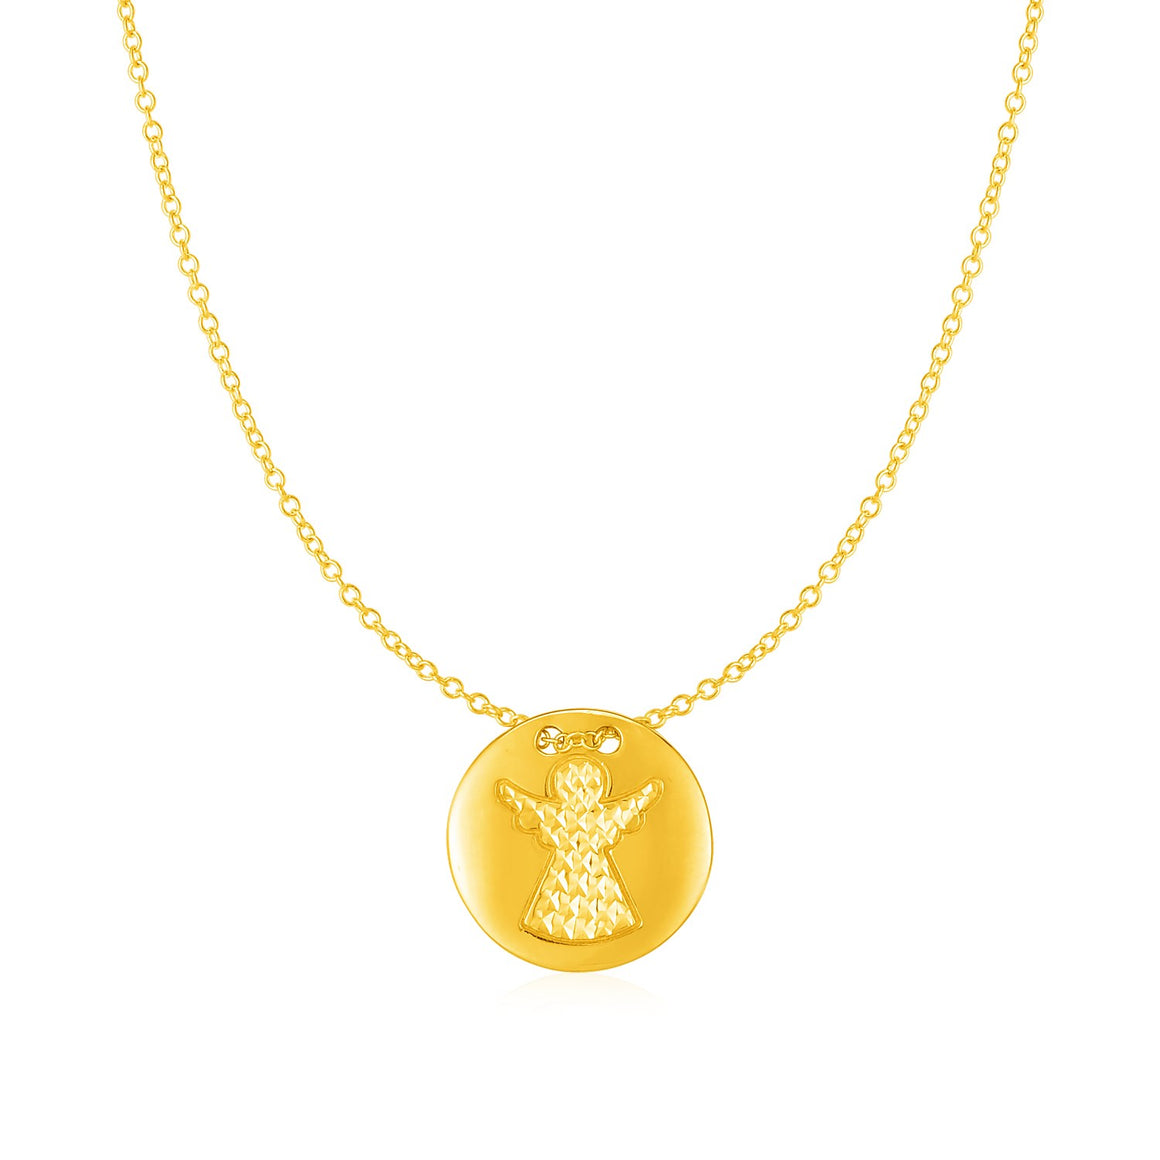 14k Yellow Gold Necklace with Angel Pendant